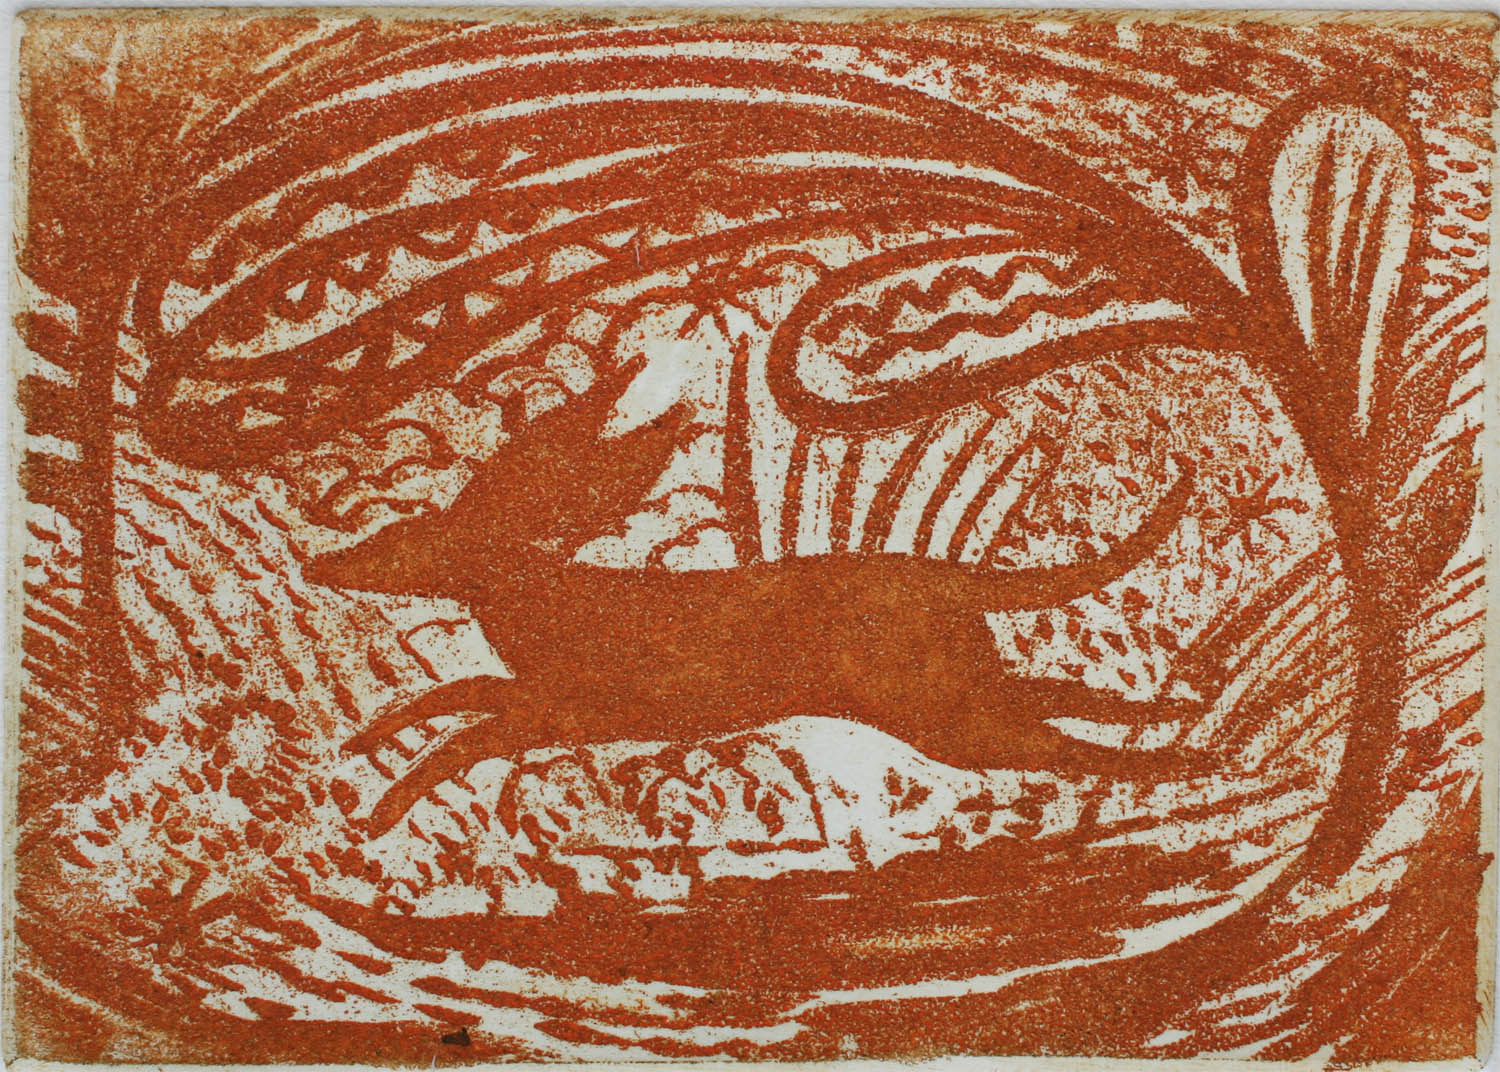 Red Dog sugar lift etching